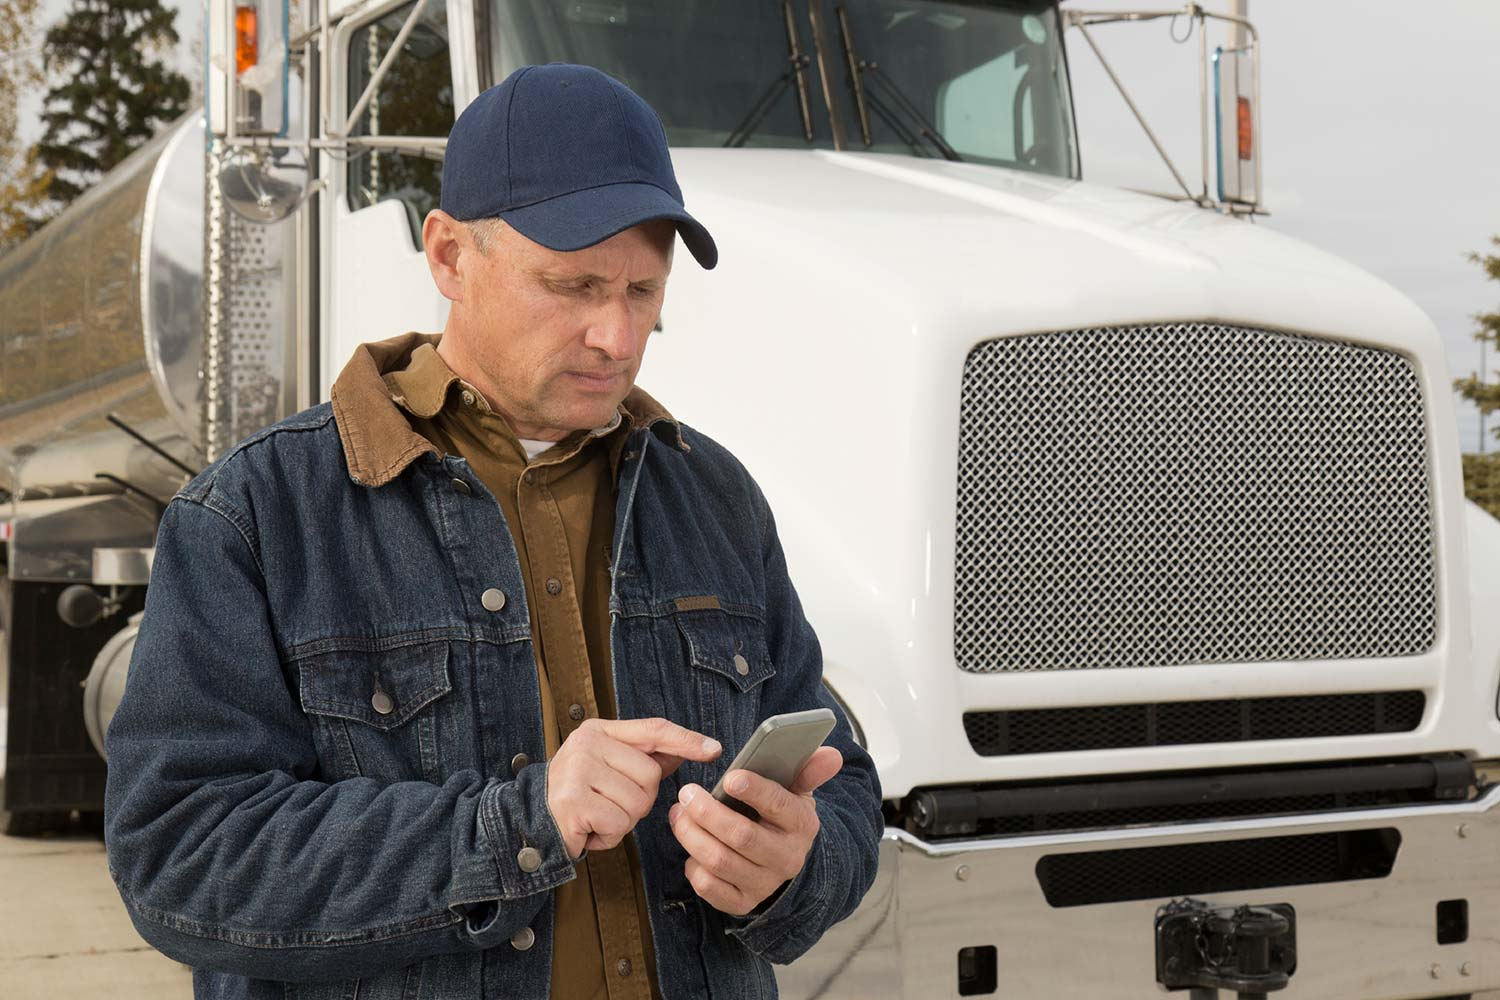 Risk managers can help to increase driver safety through fleet management systems.